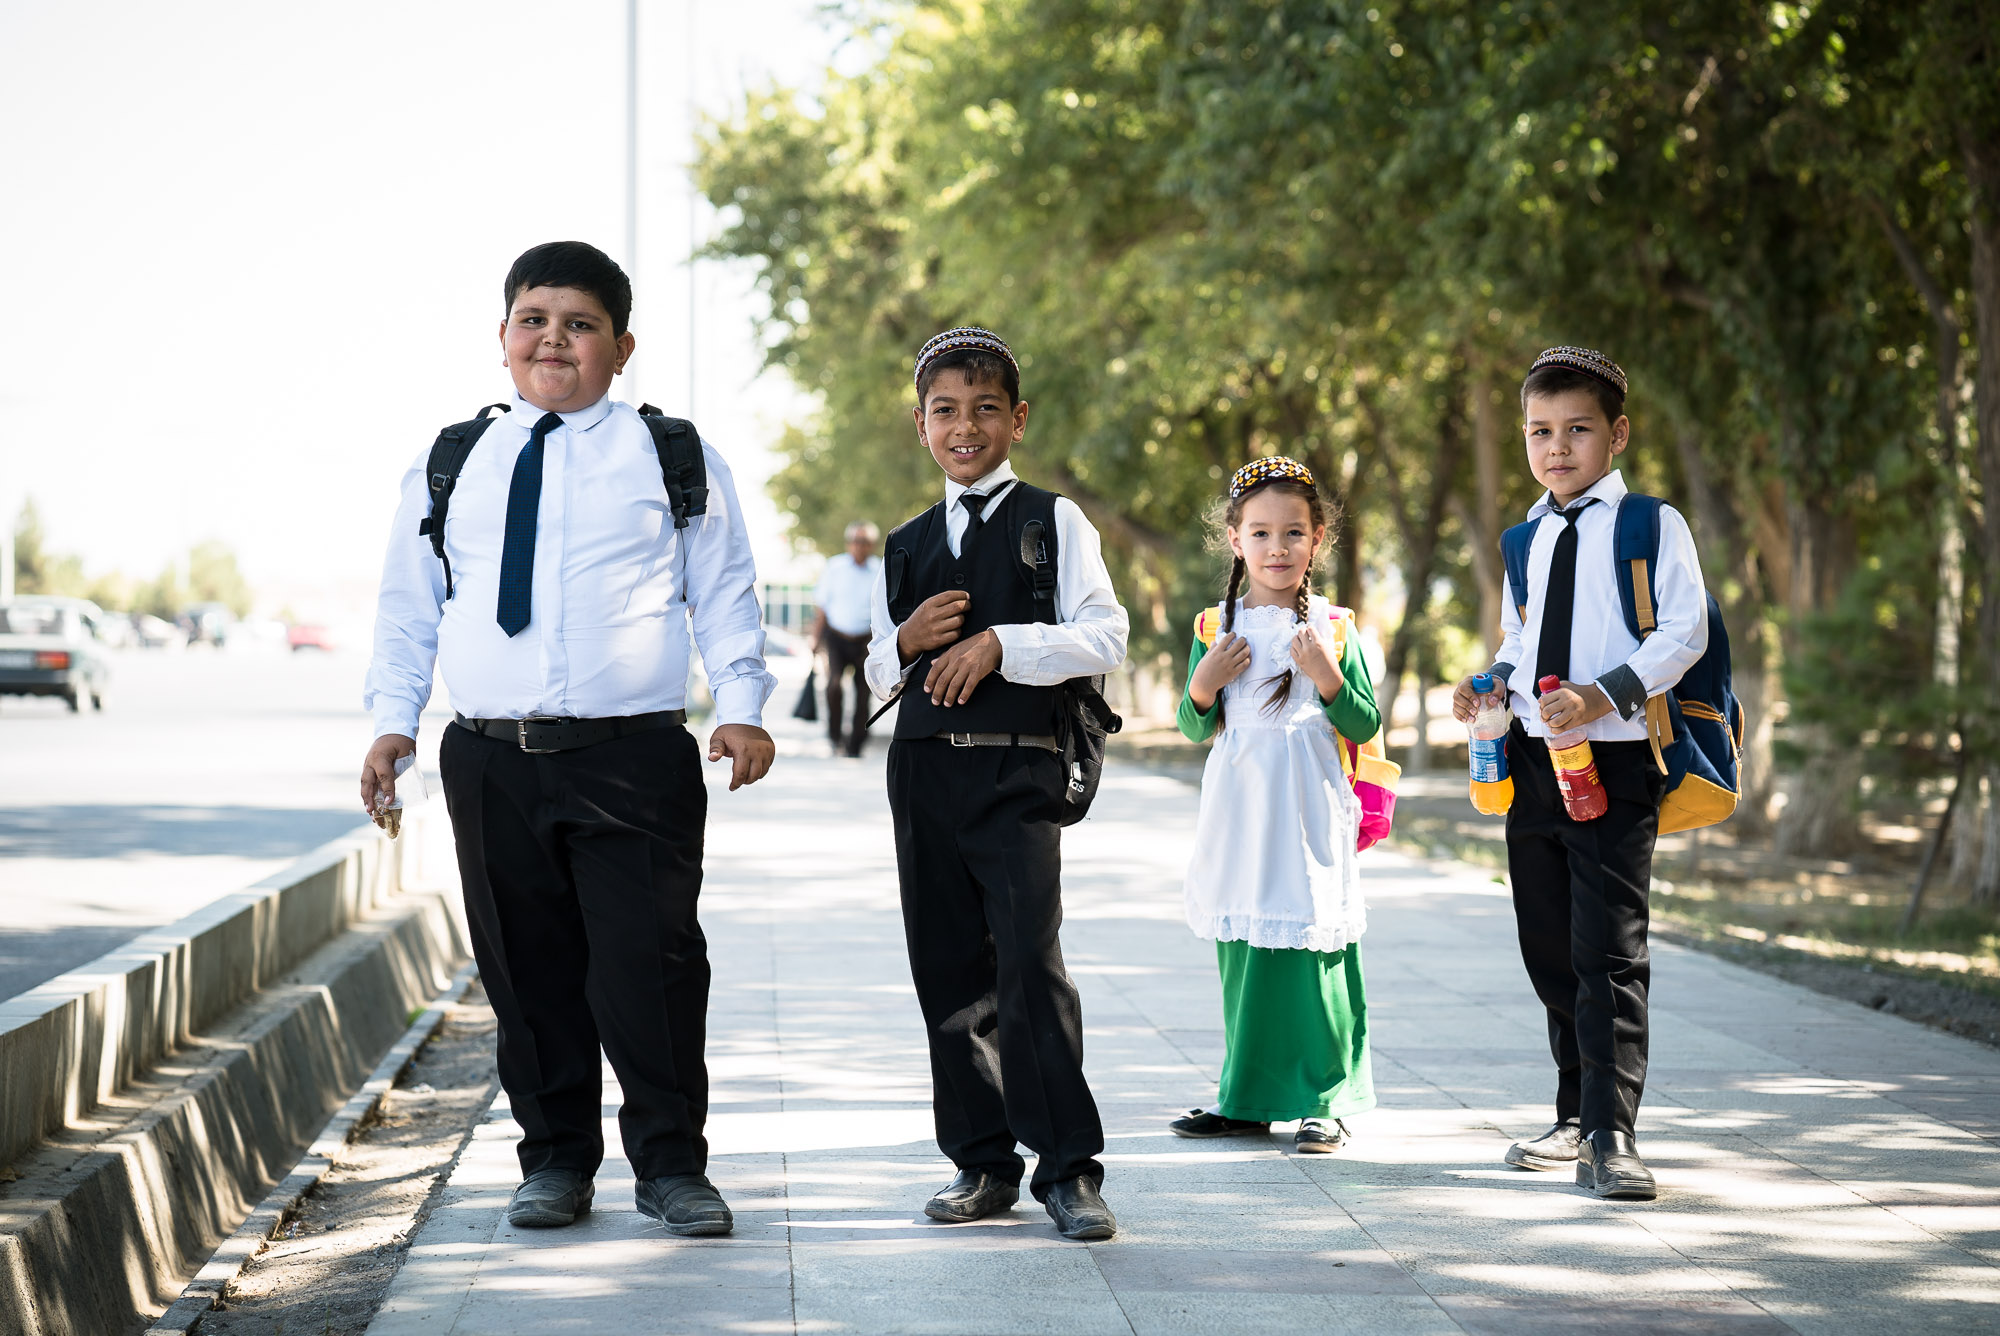 school children in Mary, Turkmenistan